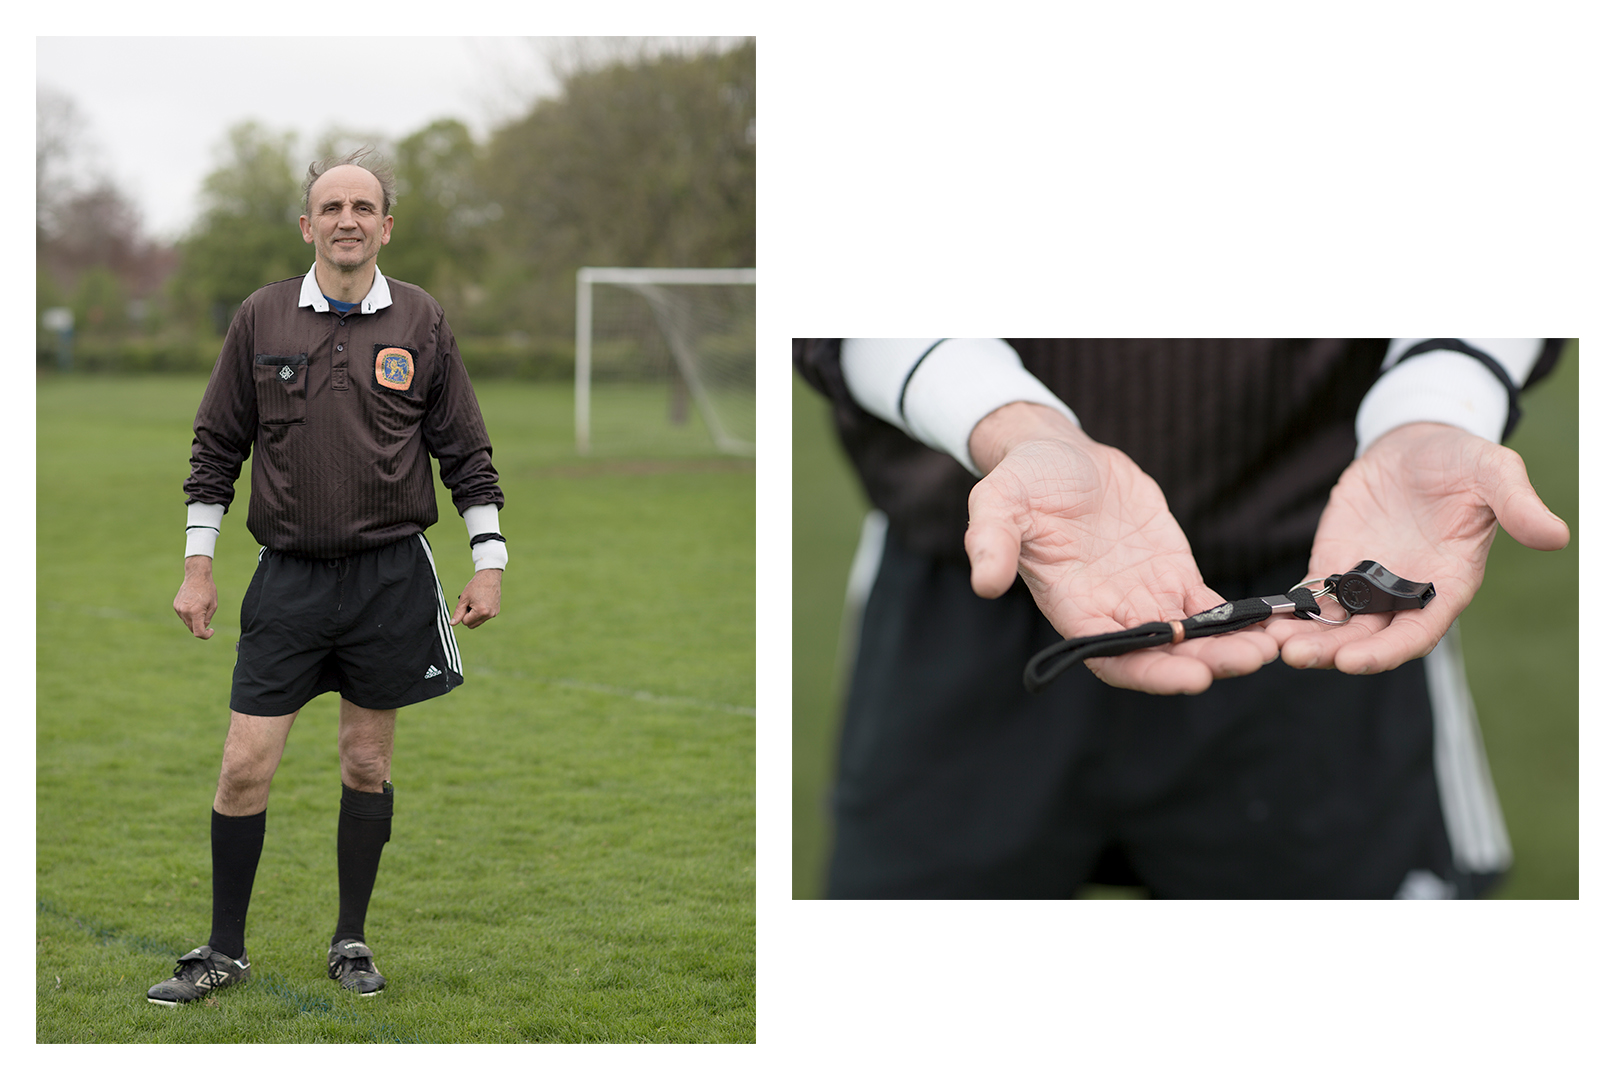 sunday league 009.jpg